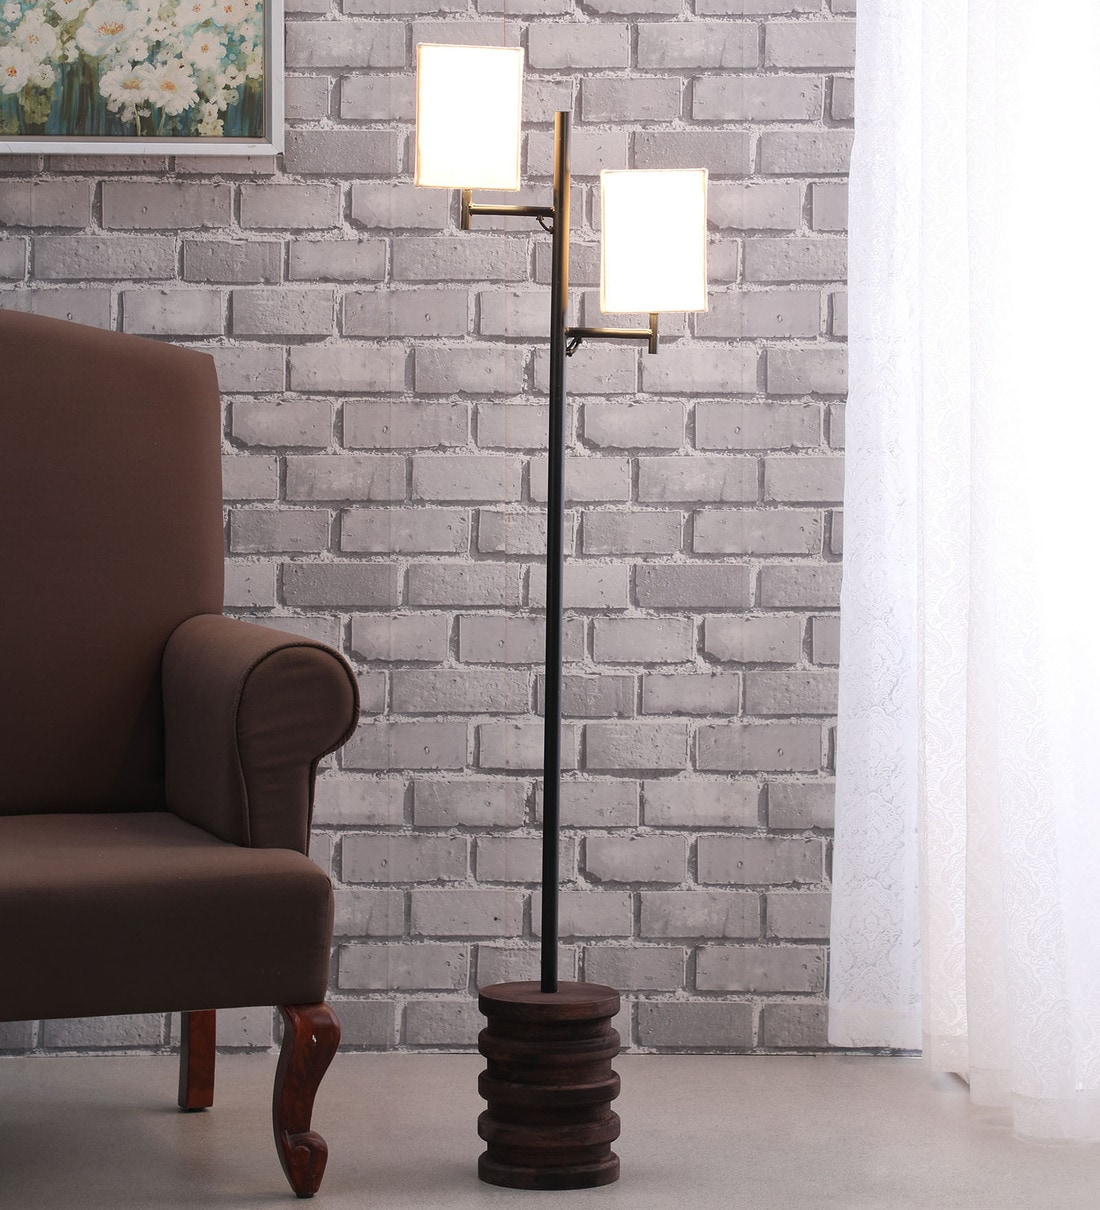 Buy Silvia White Fabric Shade Floor Lamp With Brown Base Casacraft By Pepperfry Online Modern And Contemporary Floor Lamps Floor Lamps Lamps Lighting Pepperfry Product